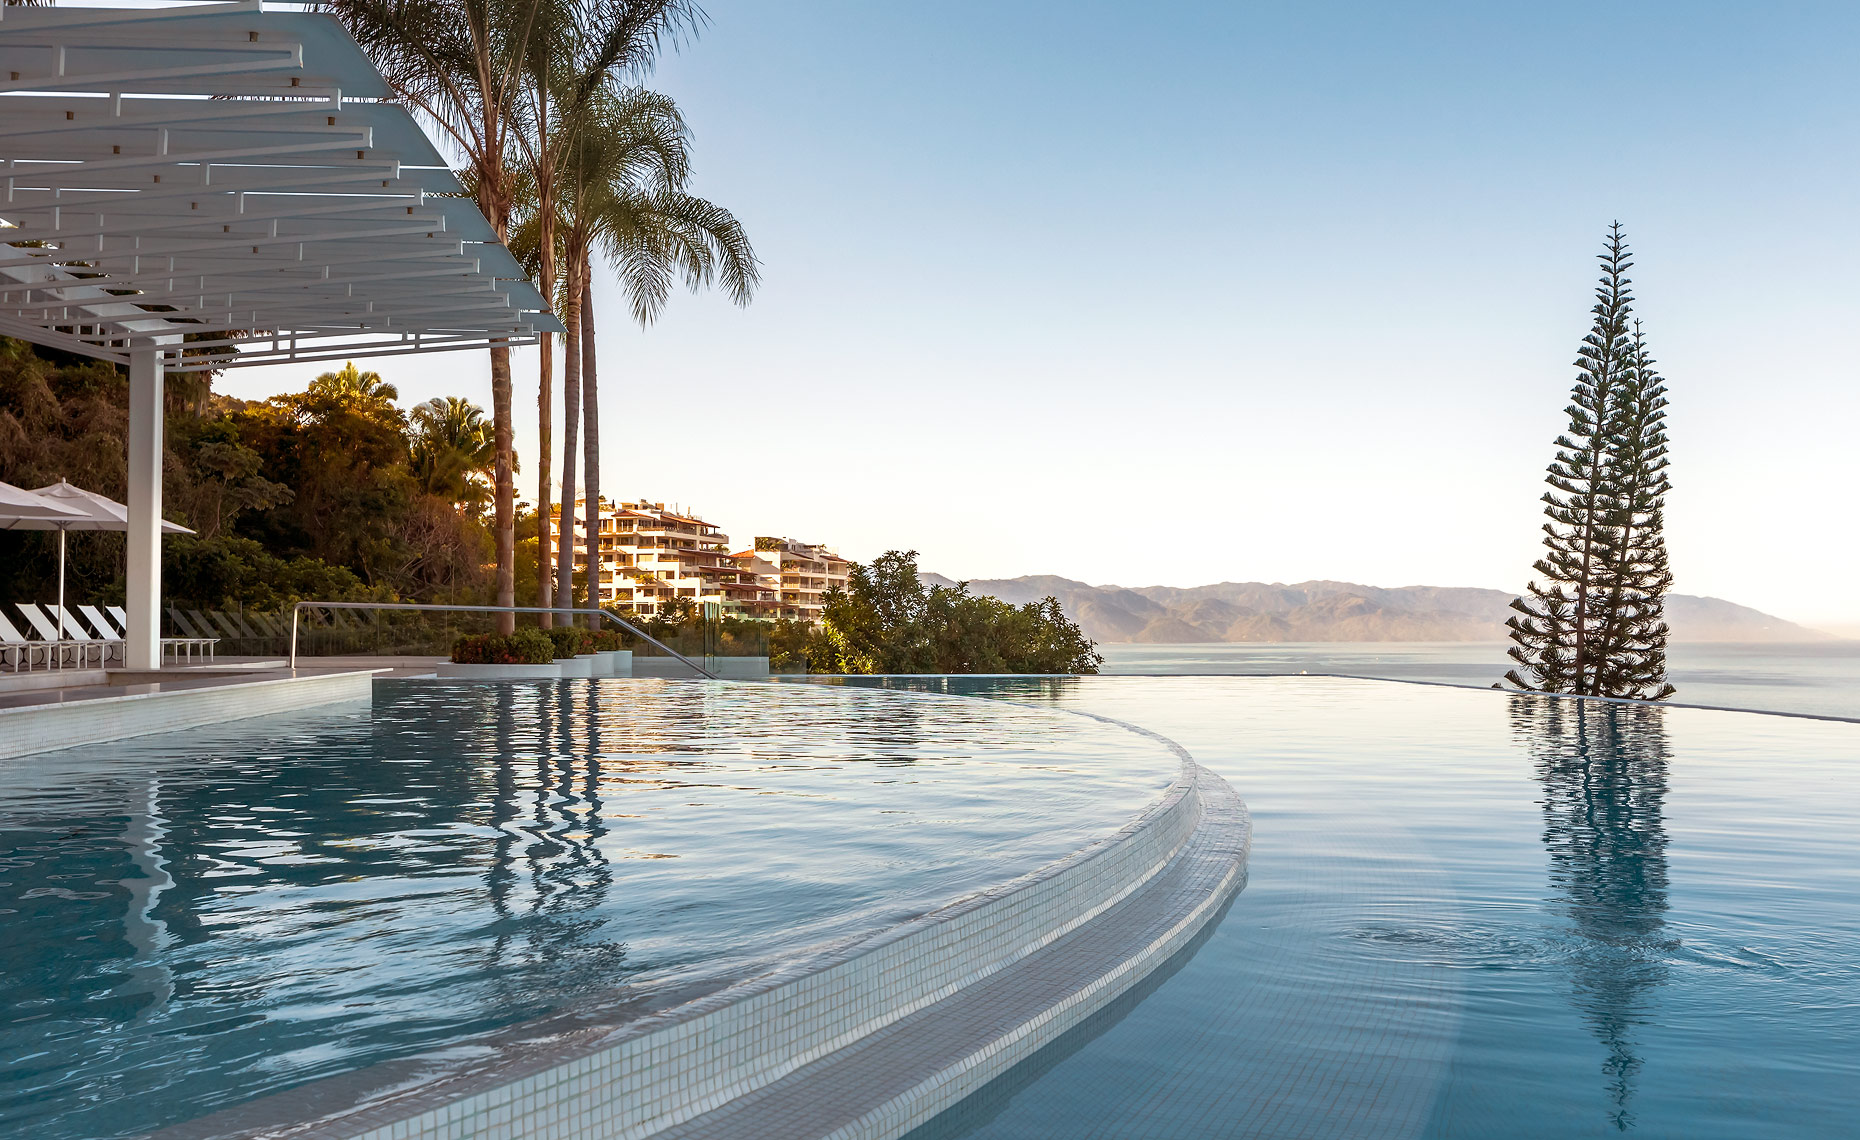 The Avalon Pool, Puerto Vallarta, Mexico - Hotel and Resort Photography